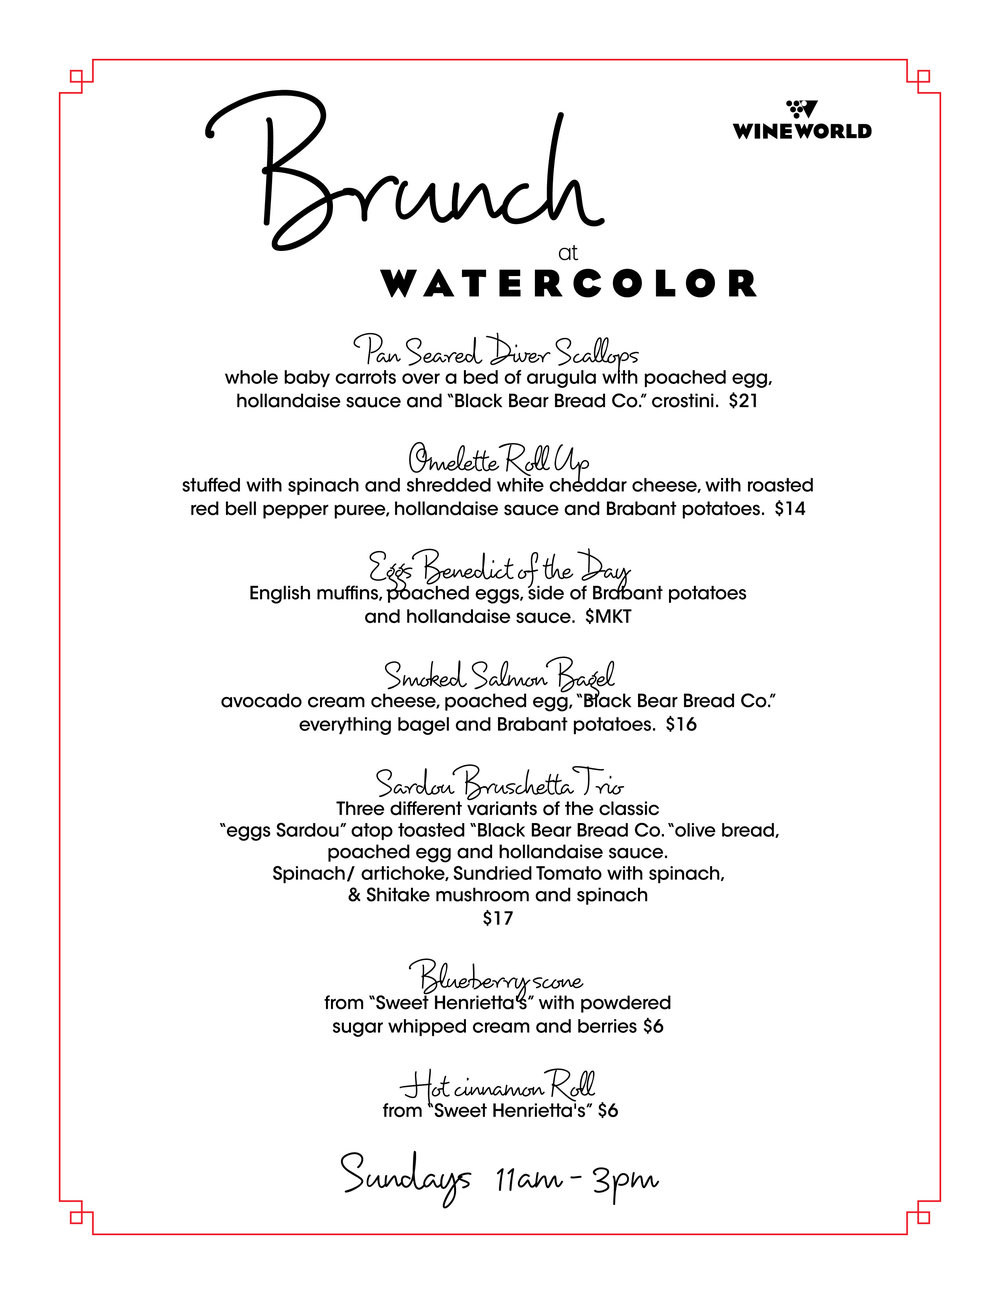 Watercolor Brunch Menu 2018 8.5x11.jpg